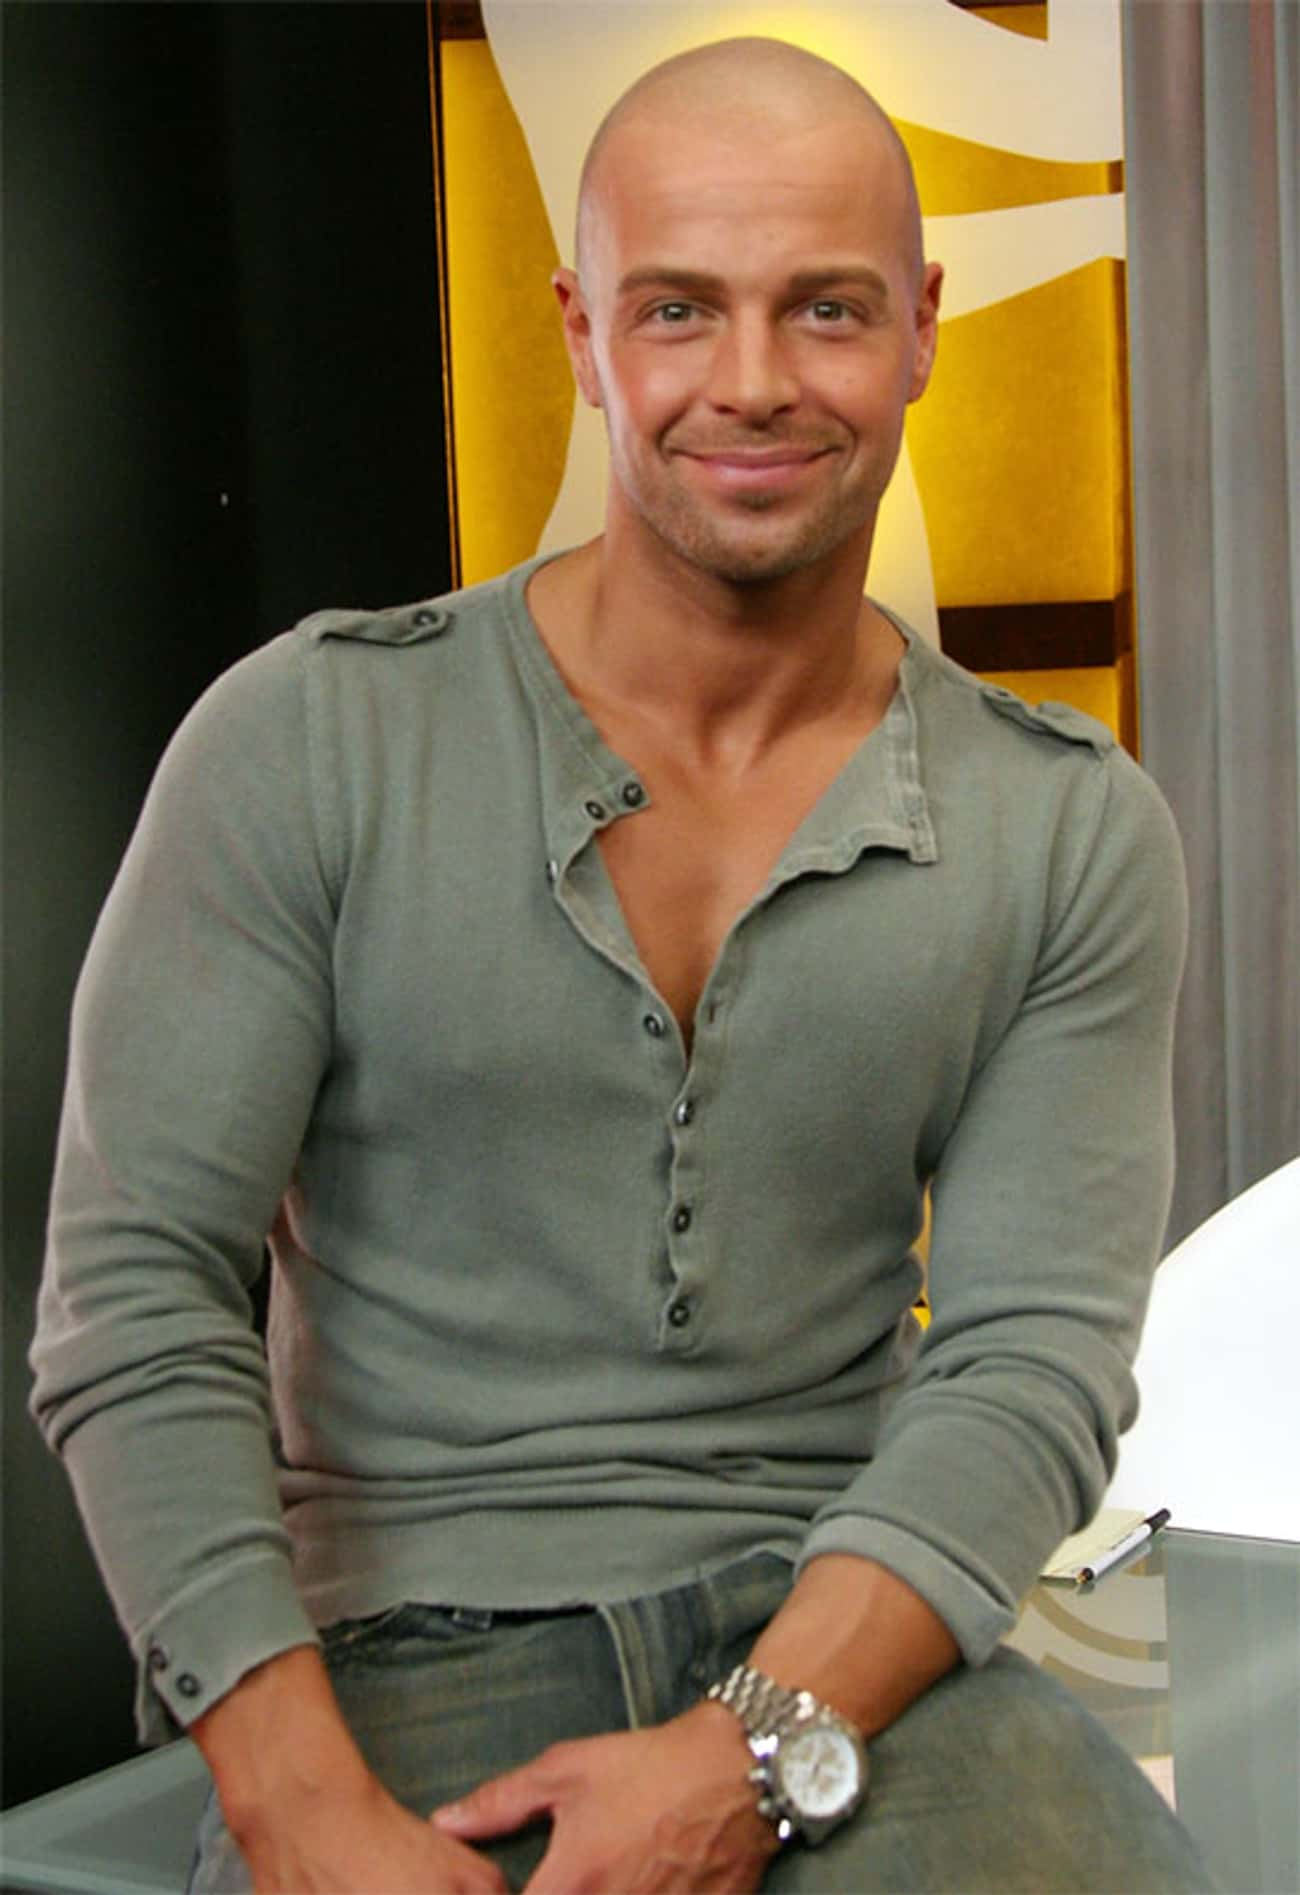 Joey Lawrence in Henley Long S is listed (or ranked) 4 on the list Hot Joey Lawrence Photos